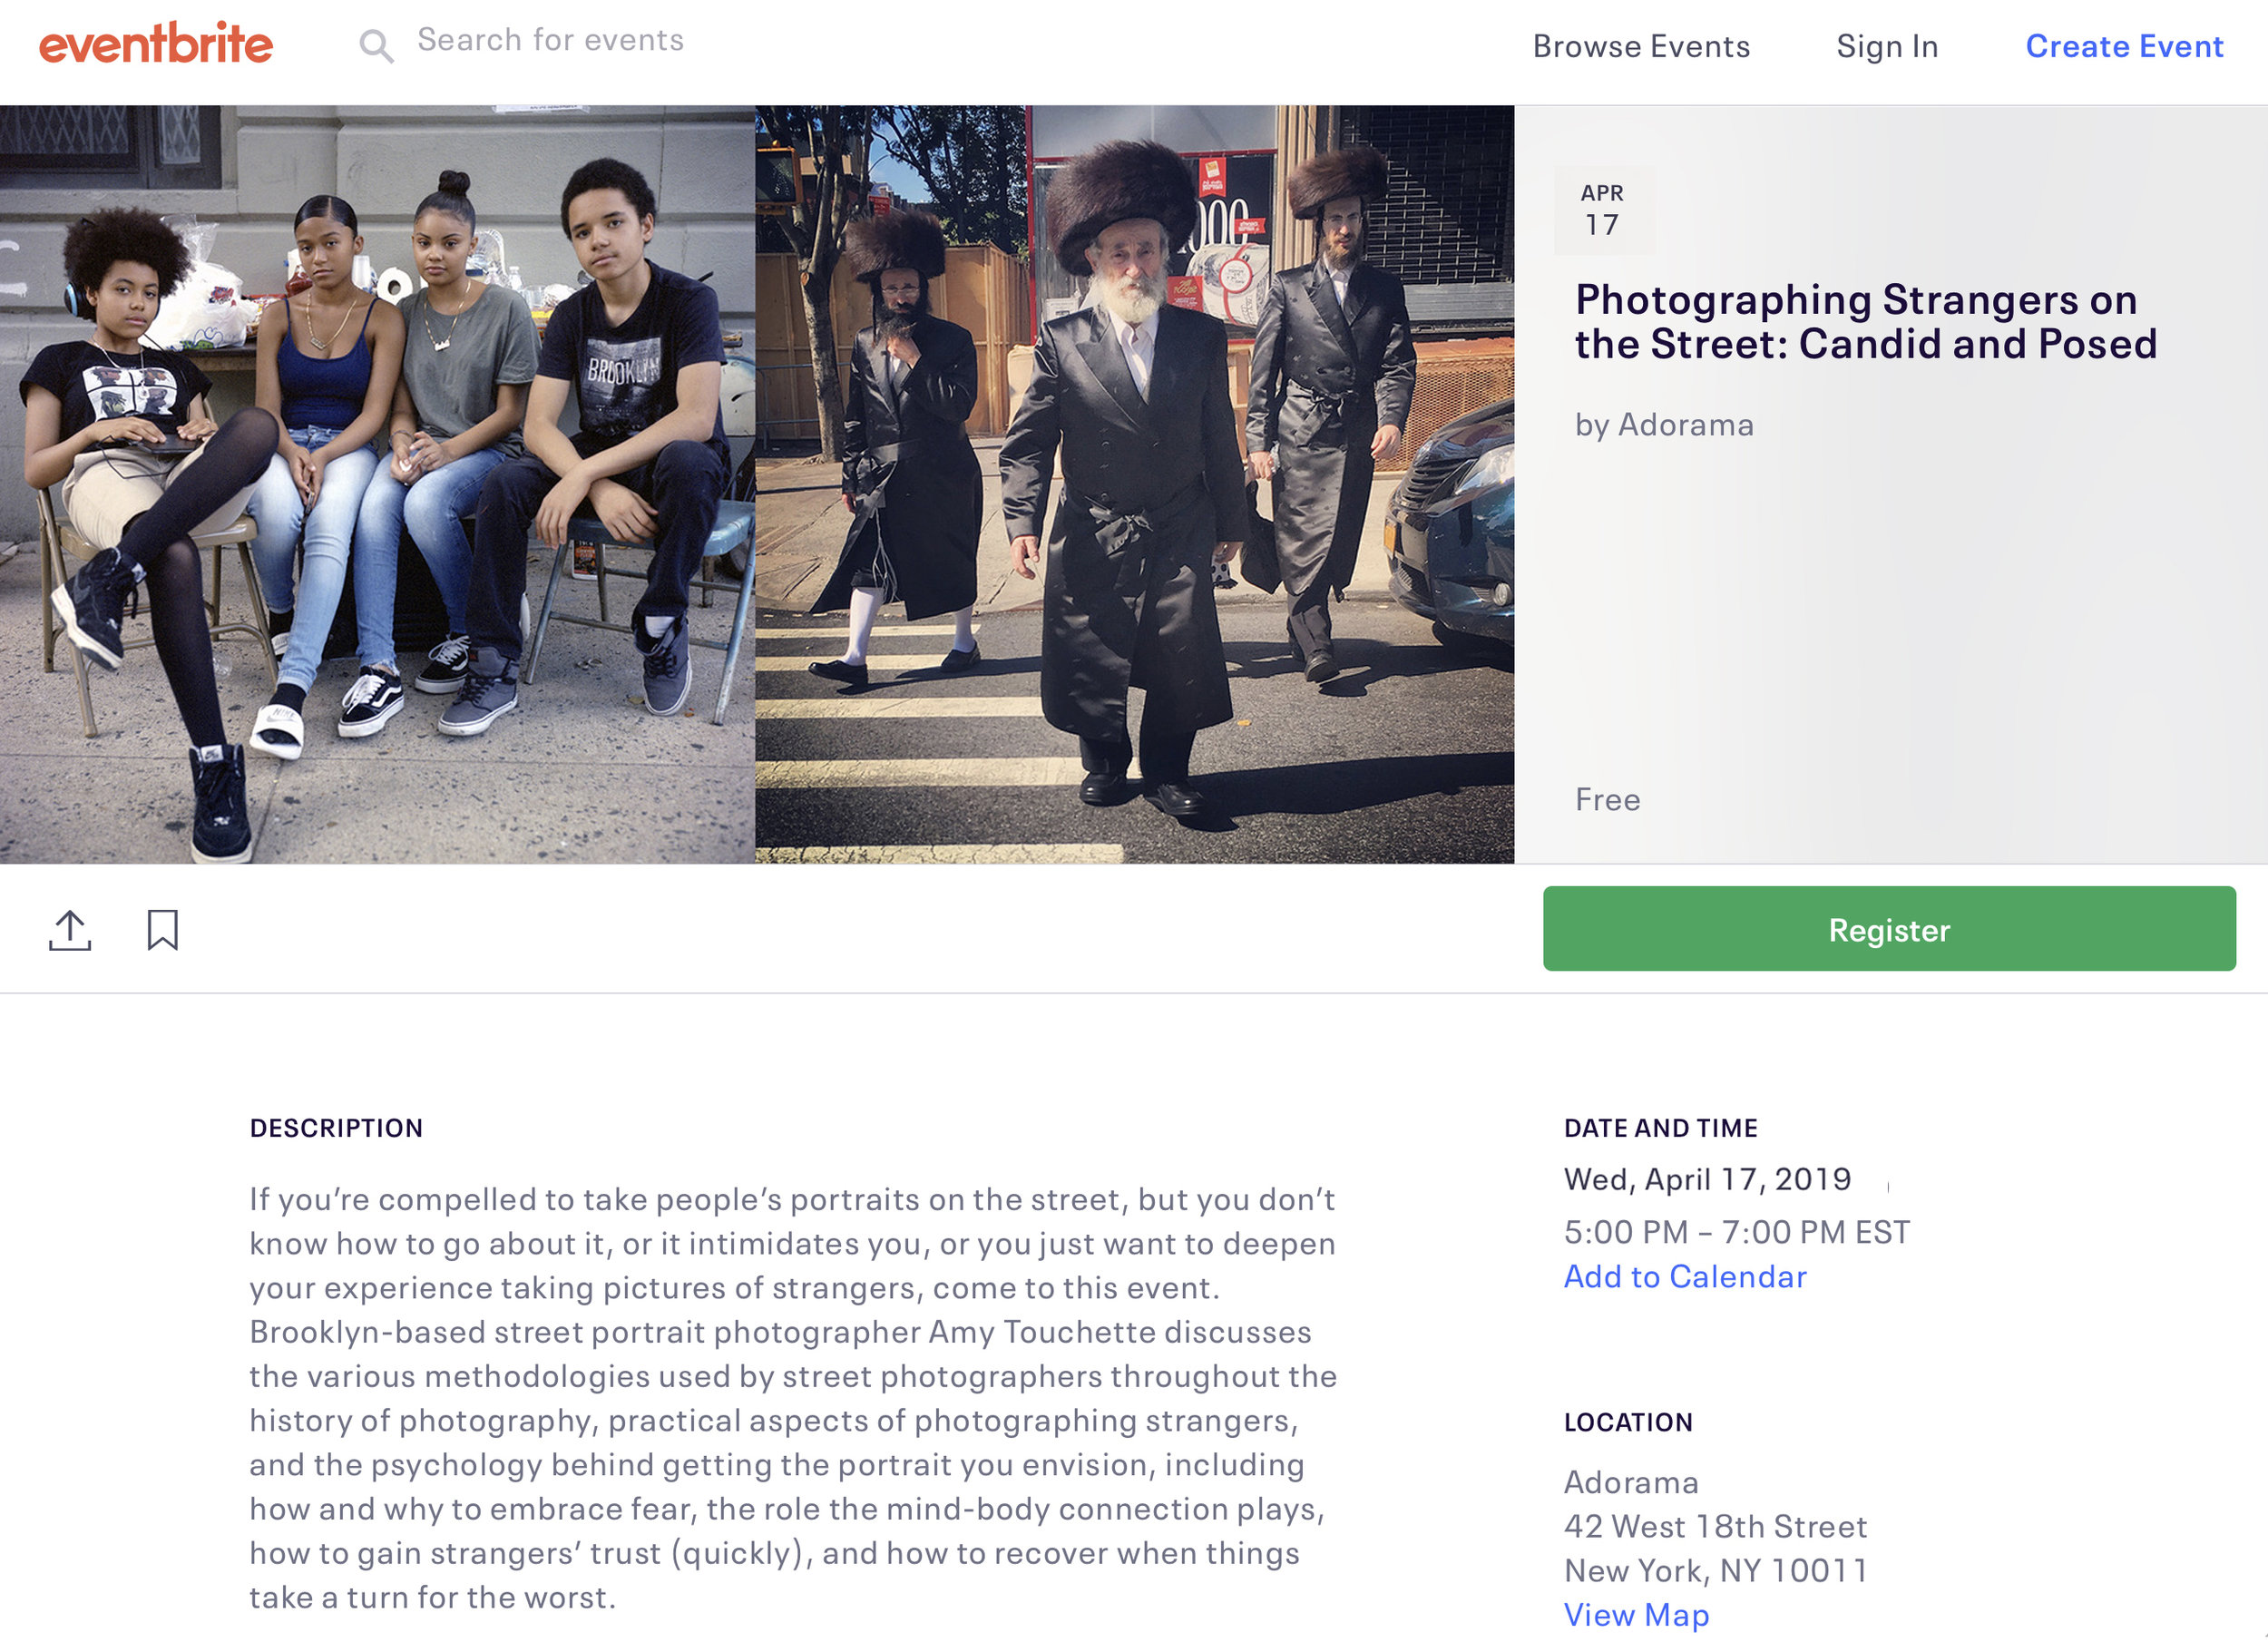 """TALK""""Photographing Strangers on the Street: Candid & Posed,""""Adorama StoreNYC - April 17, 2019, 5pm If you're compelled to take people's portraits on the street, but you don't know how to go about it, or it intimidates you, or you just want to deepen your experience taking pictures of strangers, come to this event. Brooklyn-based street portrait photographer Amy Touchette discusses the various methodologies used by street photographers throughout the history of photography, practical aspects of photographing strangers, and the psychology behind getting the portrait you envision, including how and why to embrace fear, the role the mind-body connection plays, how to gain strangers' trust (quickly), and how to recover when things take a turn for the worst.Adorama camera store is located at 42 West 18th Street, New York, NY 10011."""